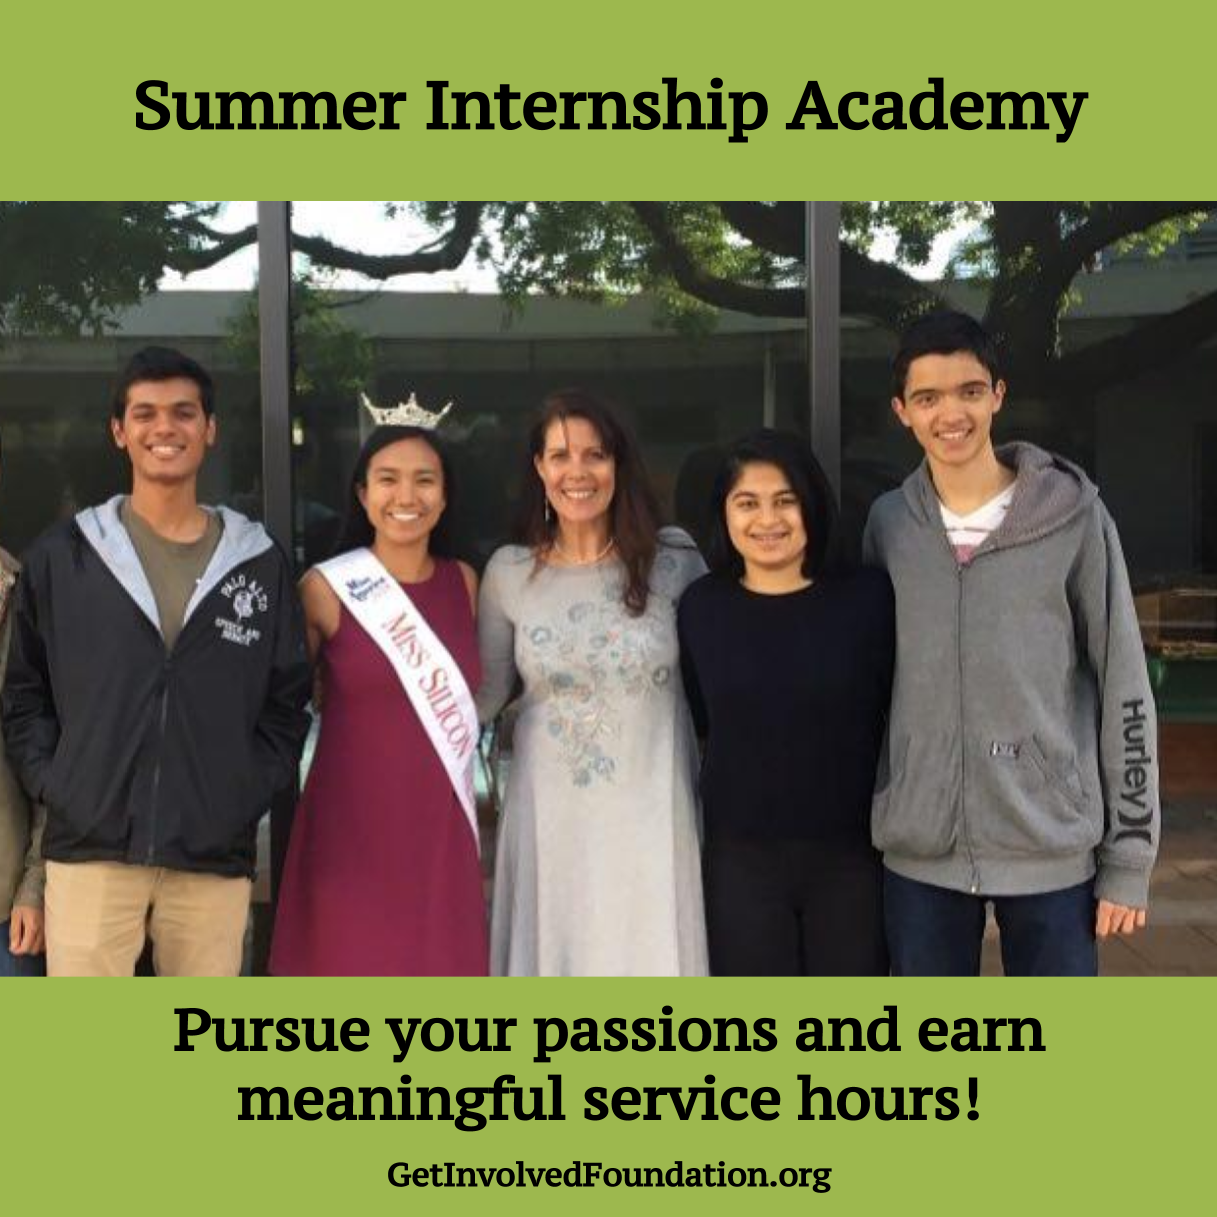 Summer Internship Academy